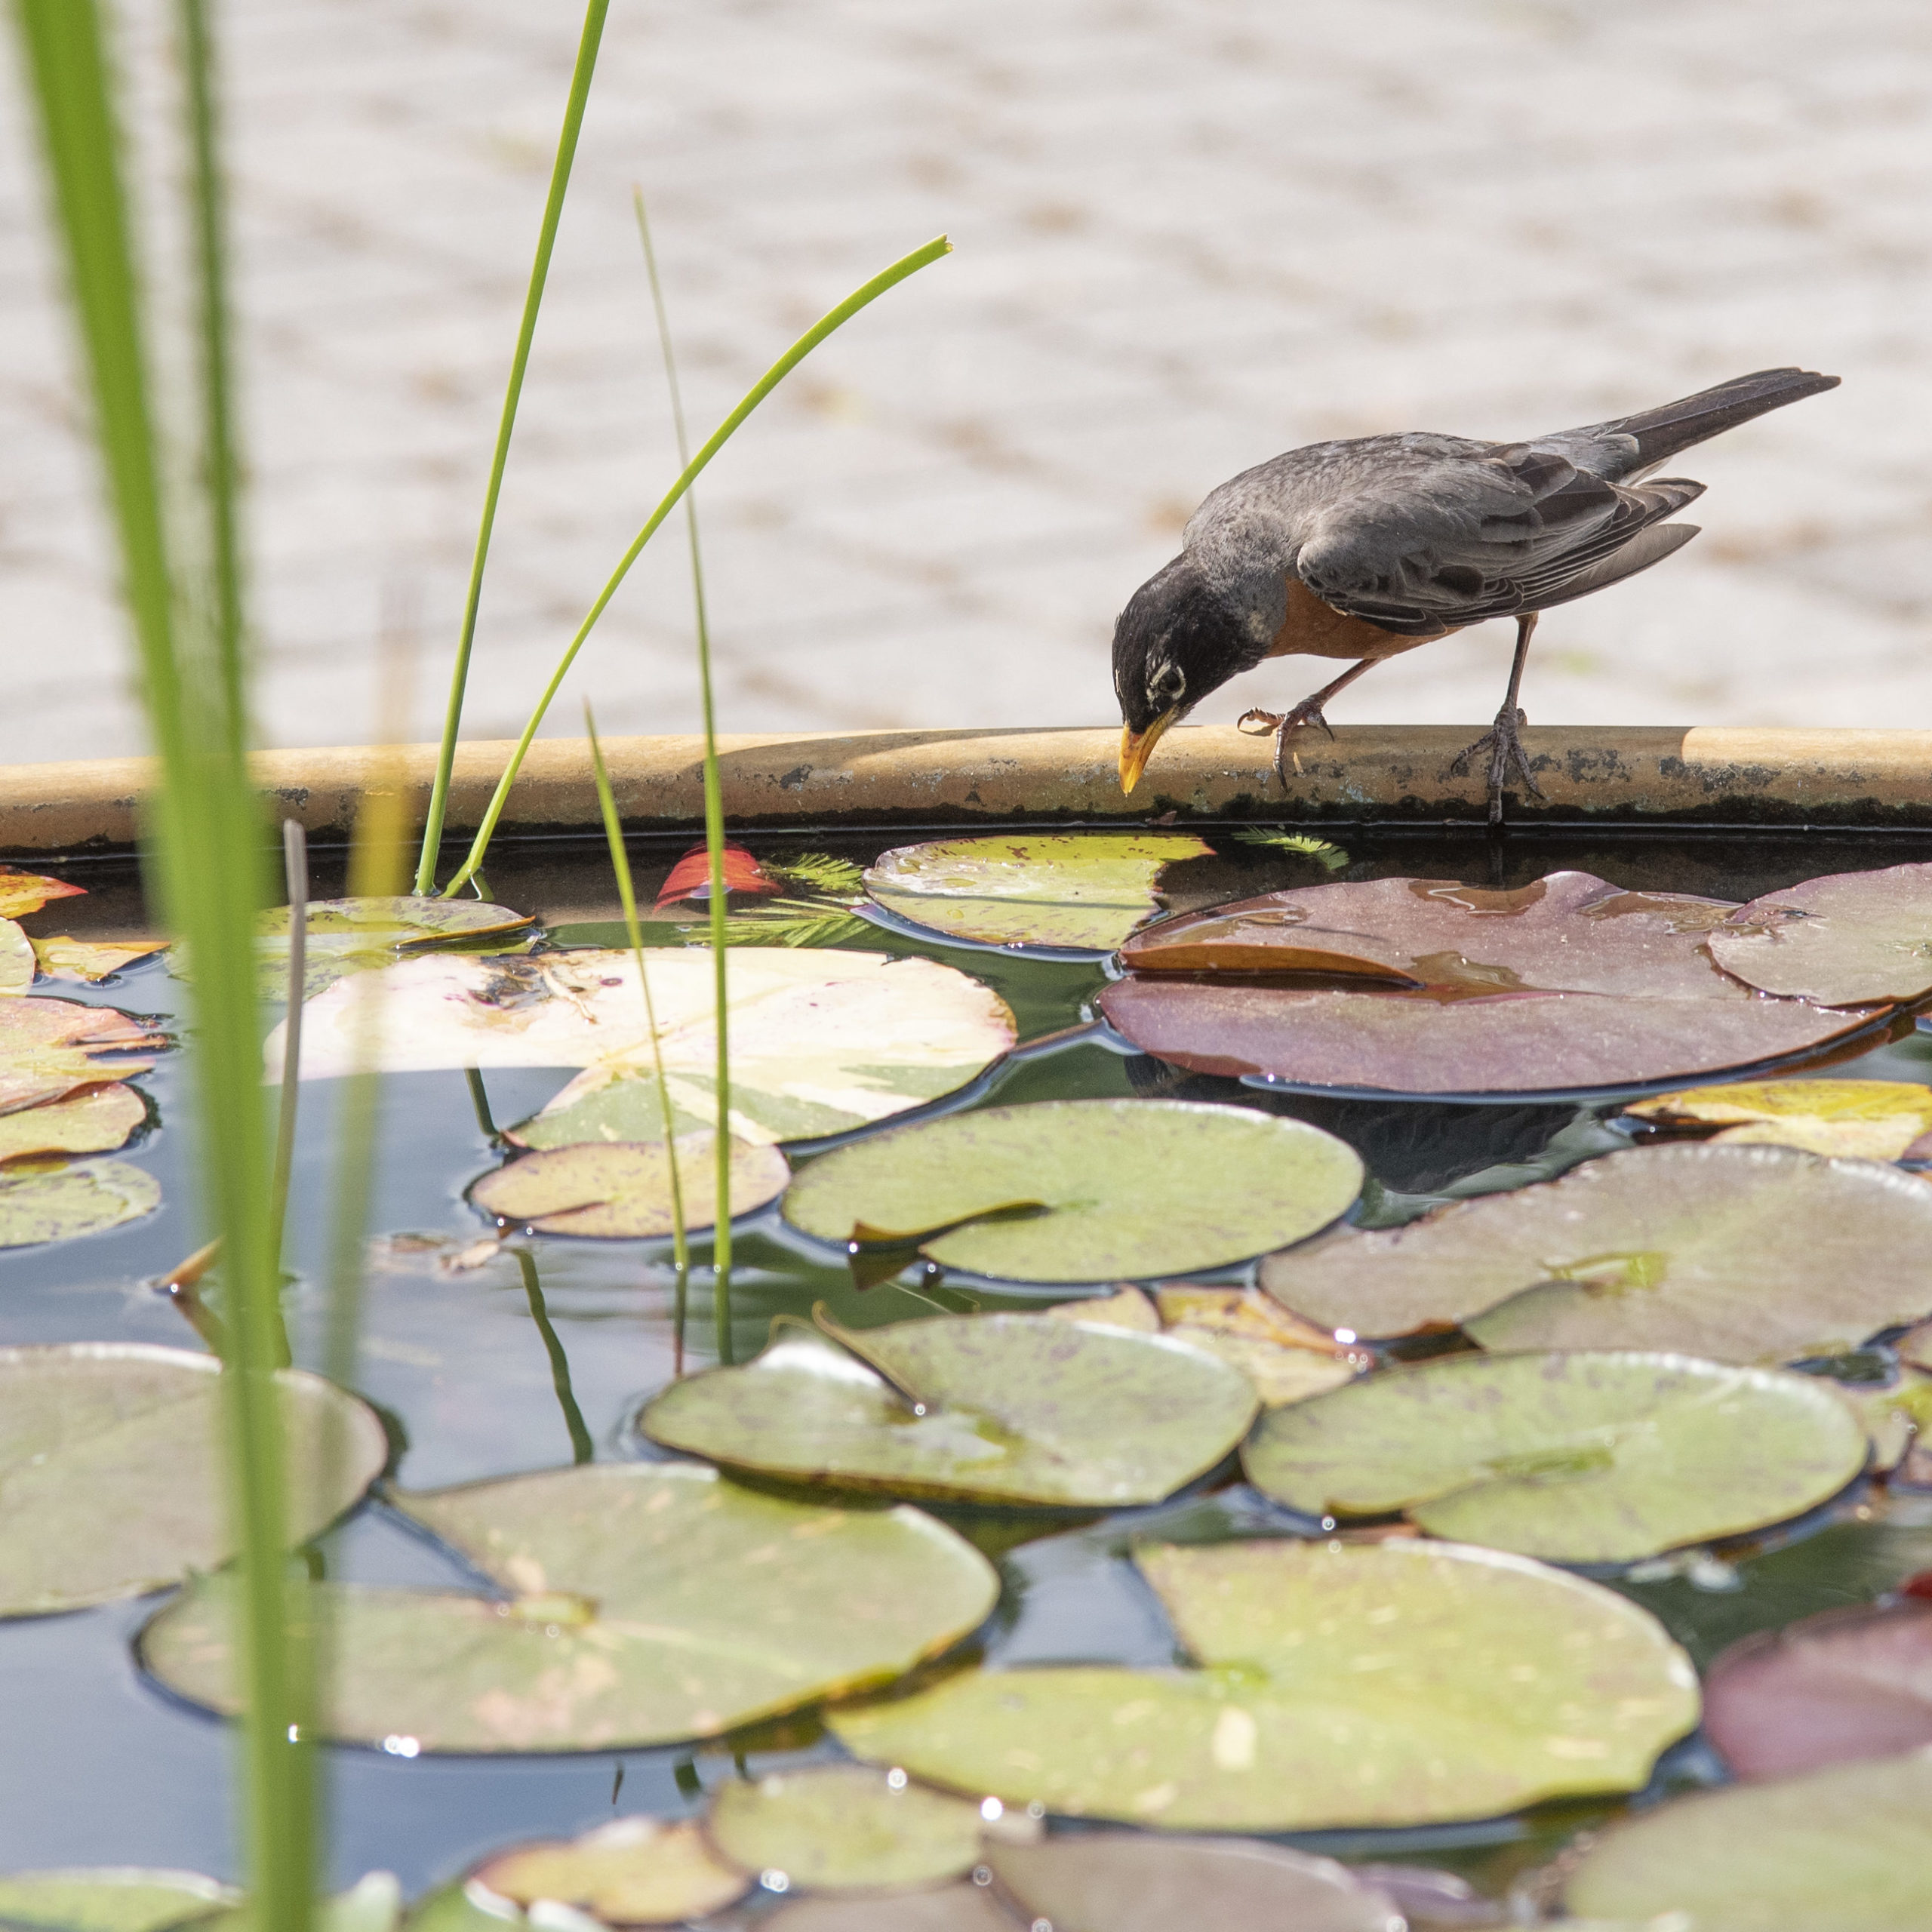 Bird sits on edge of water feature full of Lilly pads and grasses